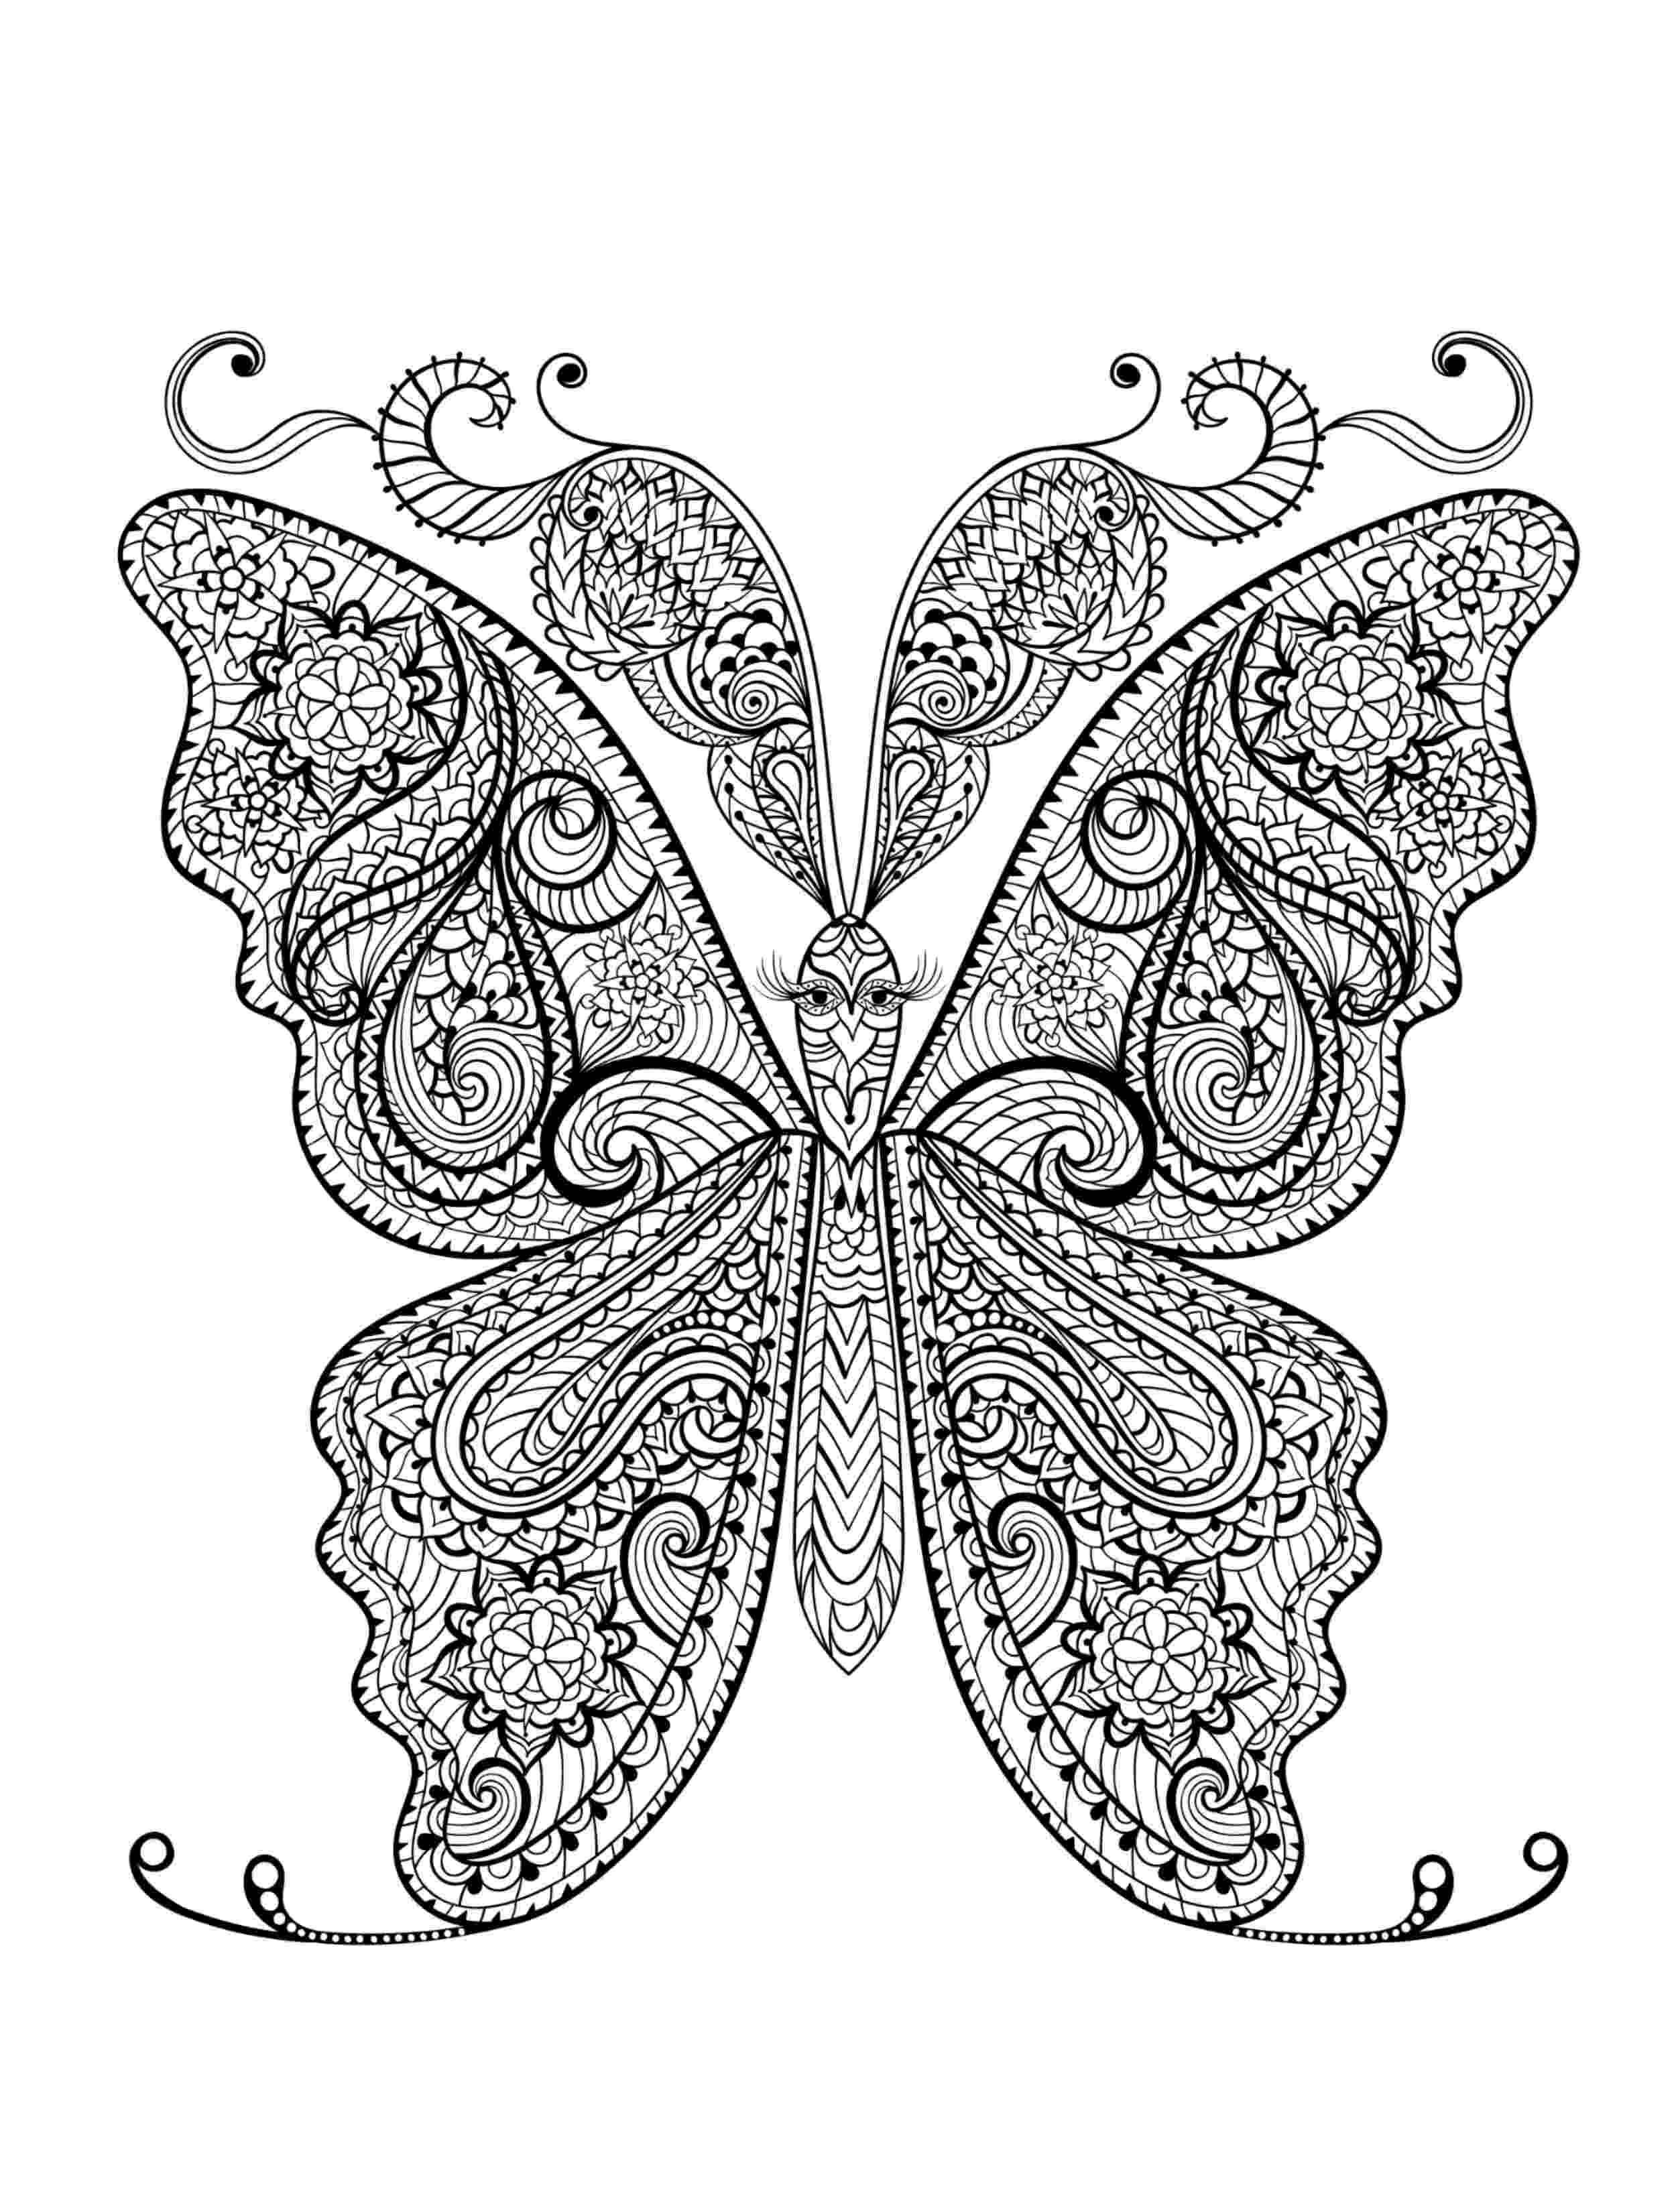 animal coloring book for adults animal coloring pages for adults best coloring pages for coloring for animal book adults 1 1